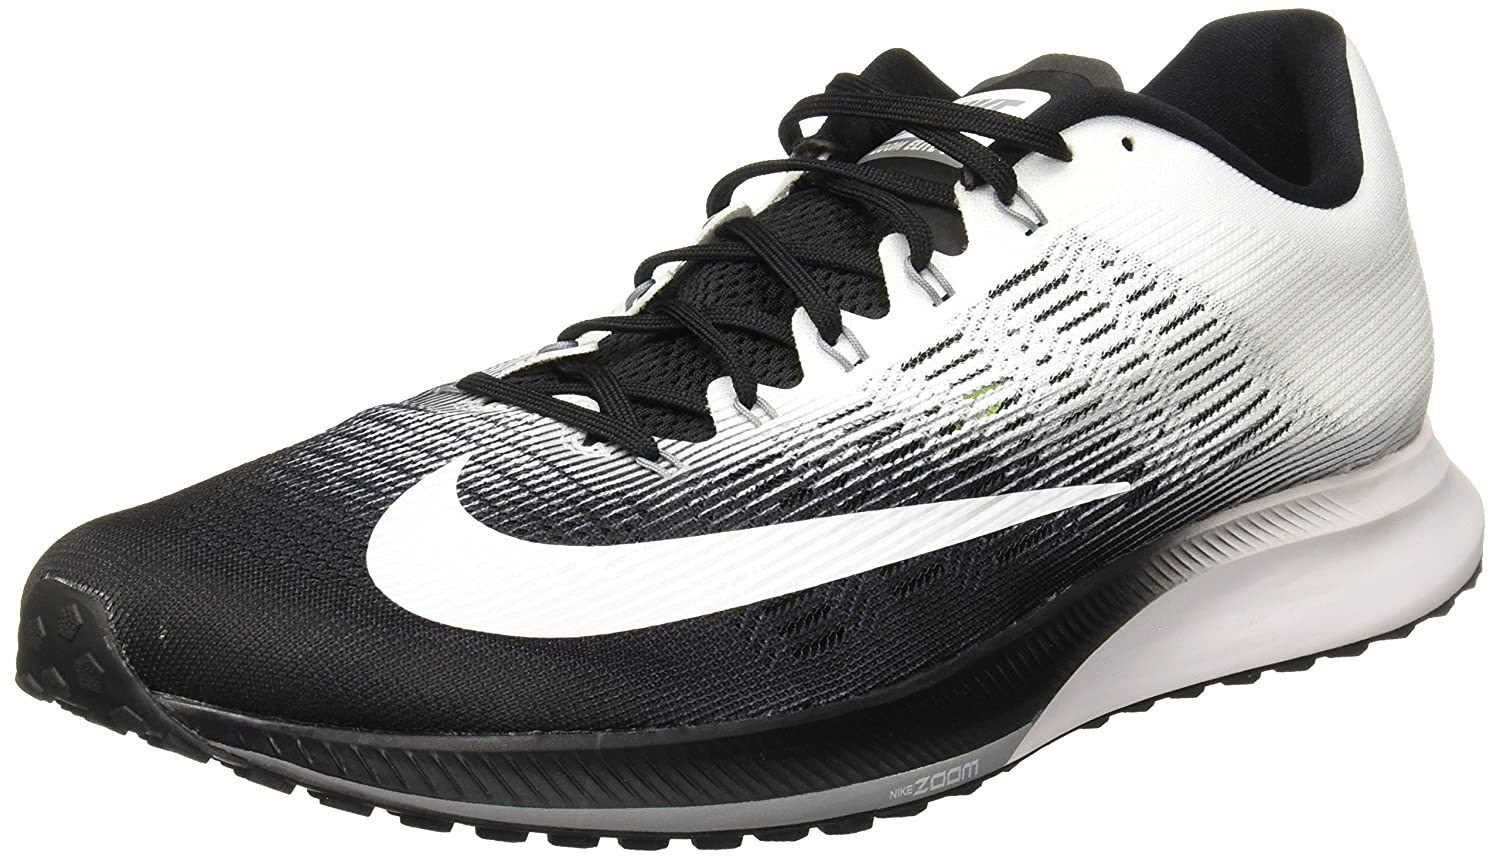 TALLA 40 EU. Nike Air Zoom Elite 9, Zapatillas de Trail Running para Hombre